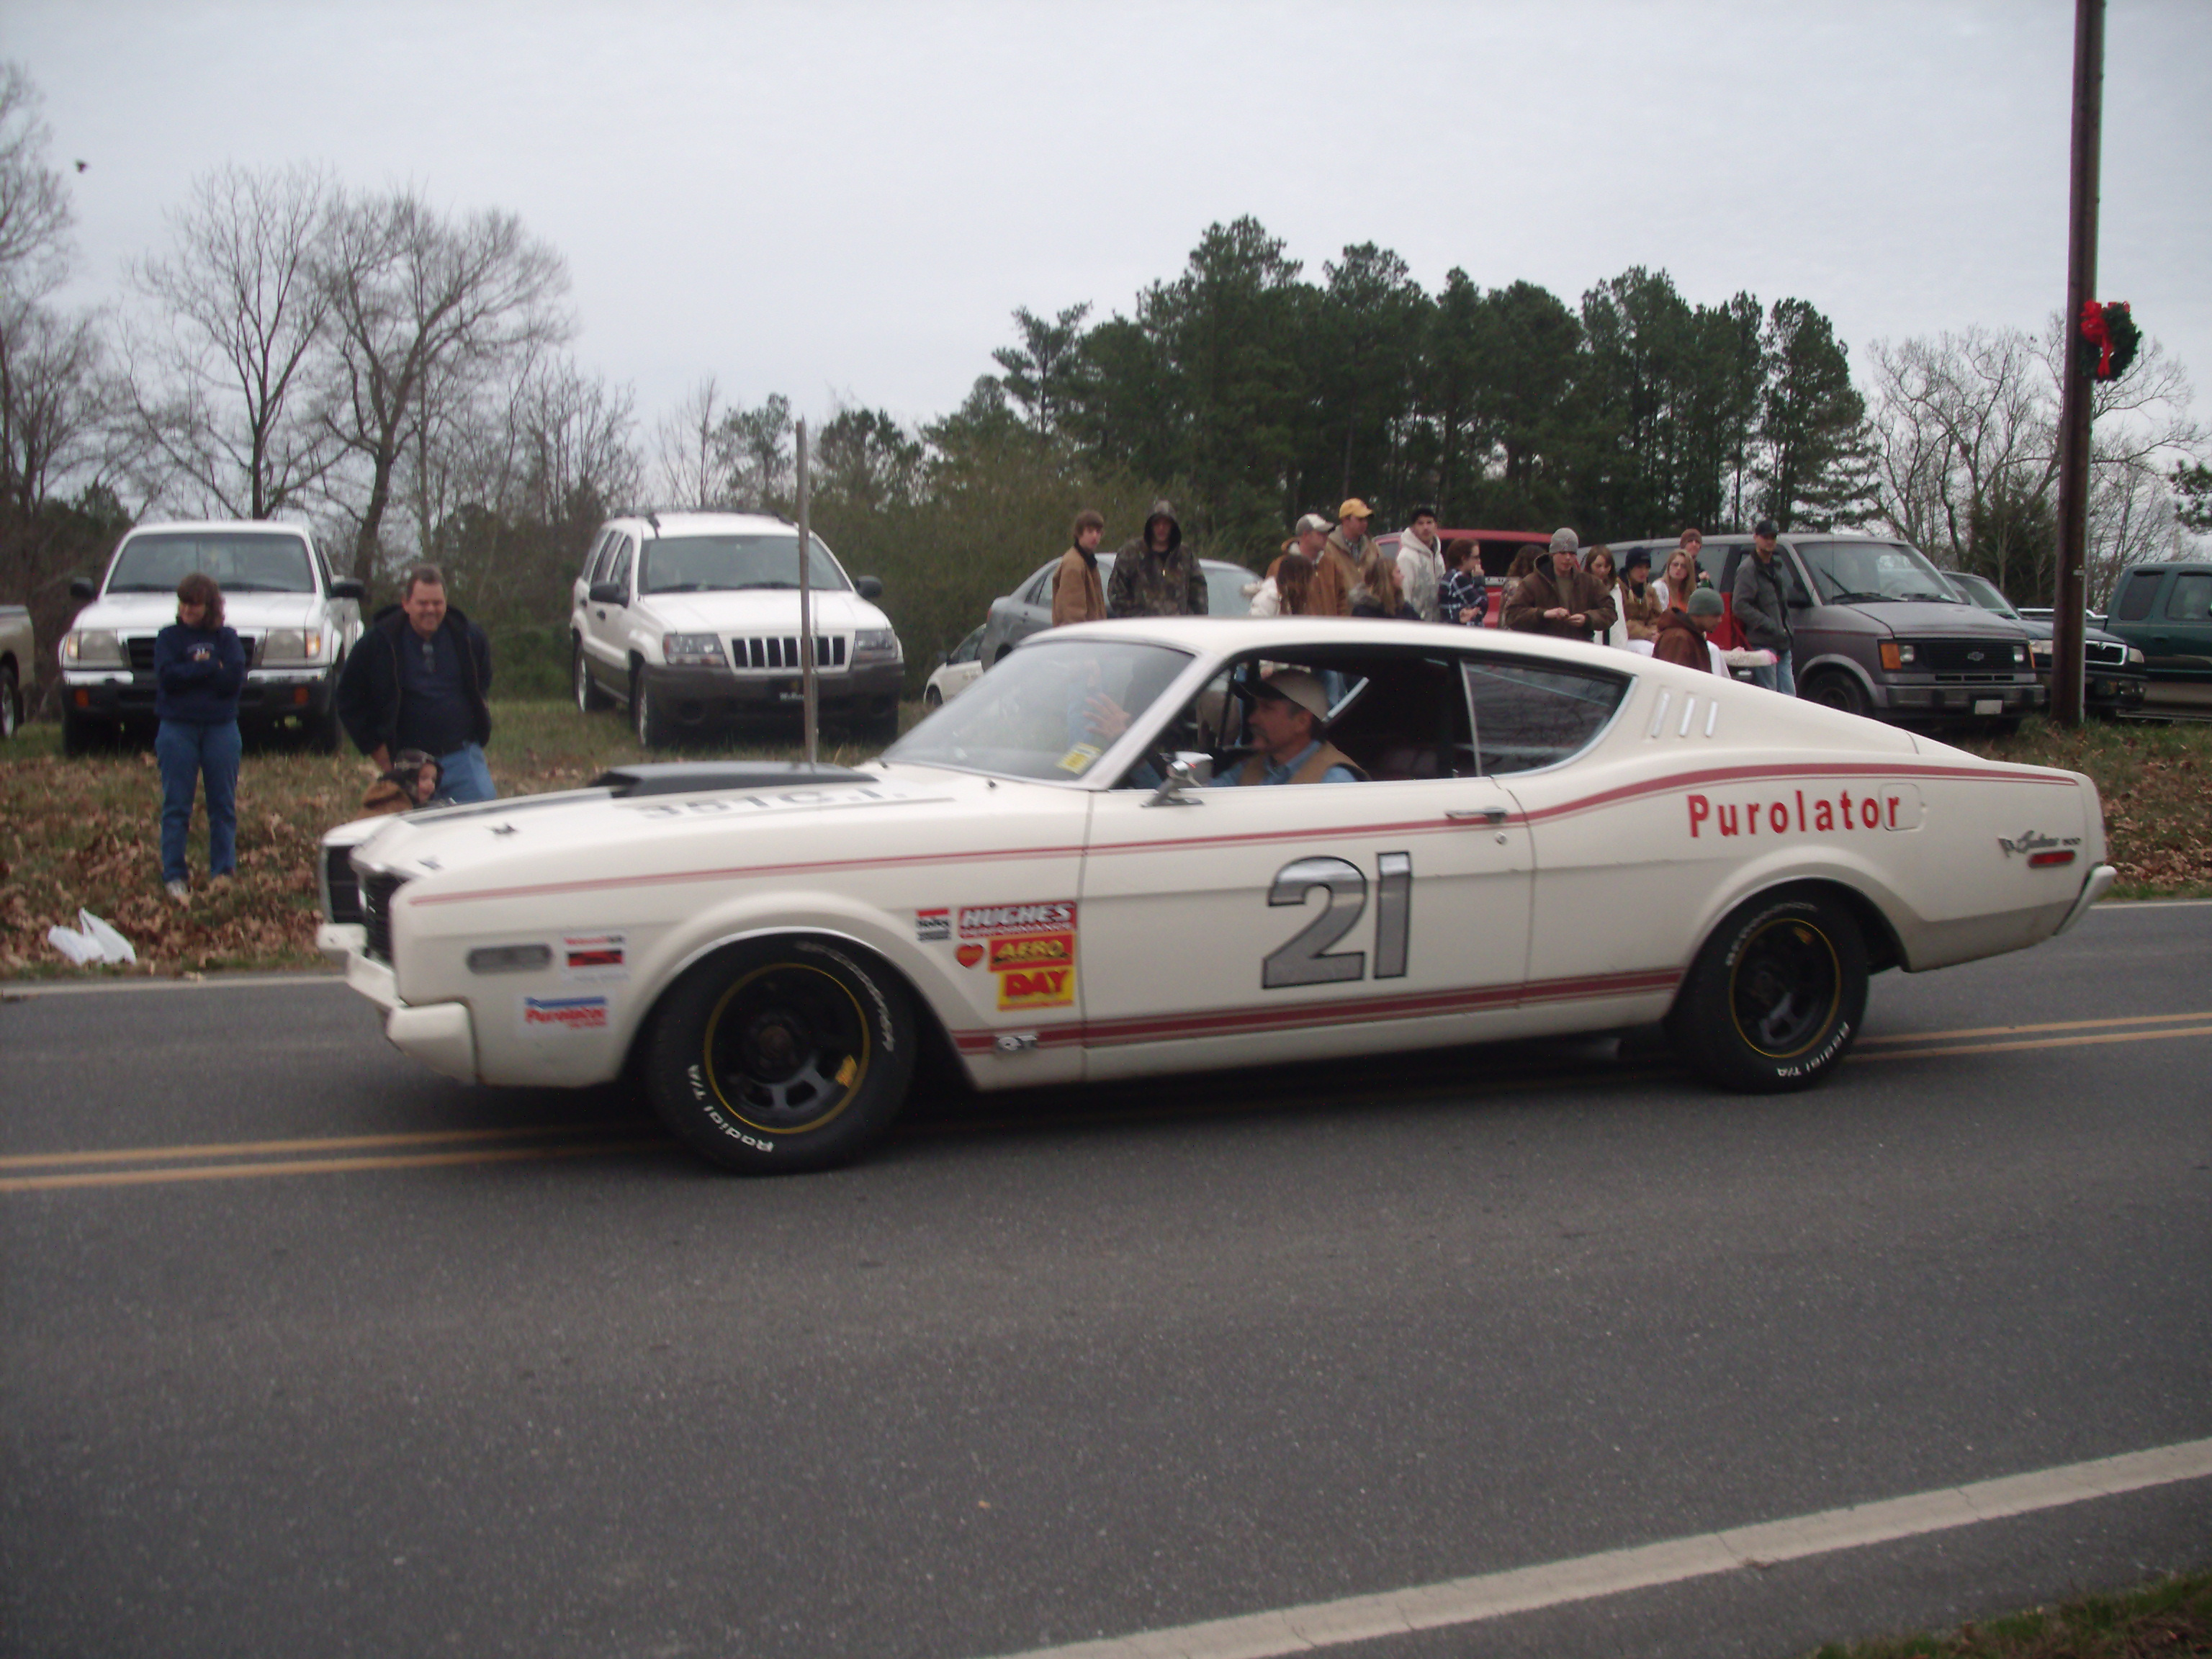 1968 Mercury Cyclone GT 500 : Talladega and Spoiler Registry